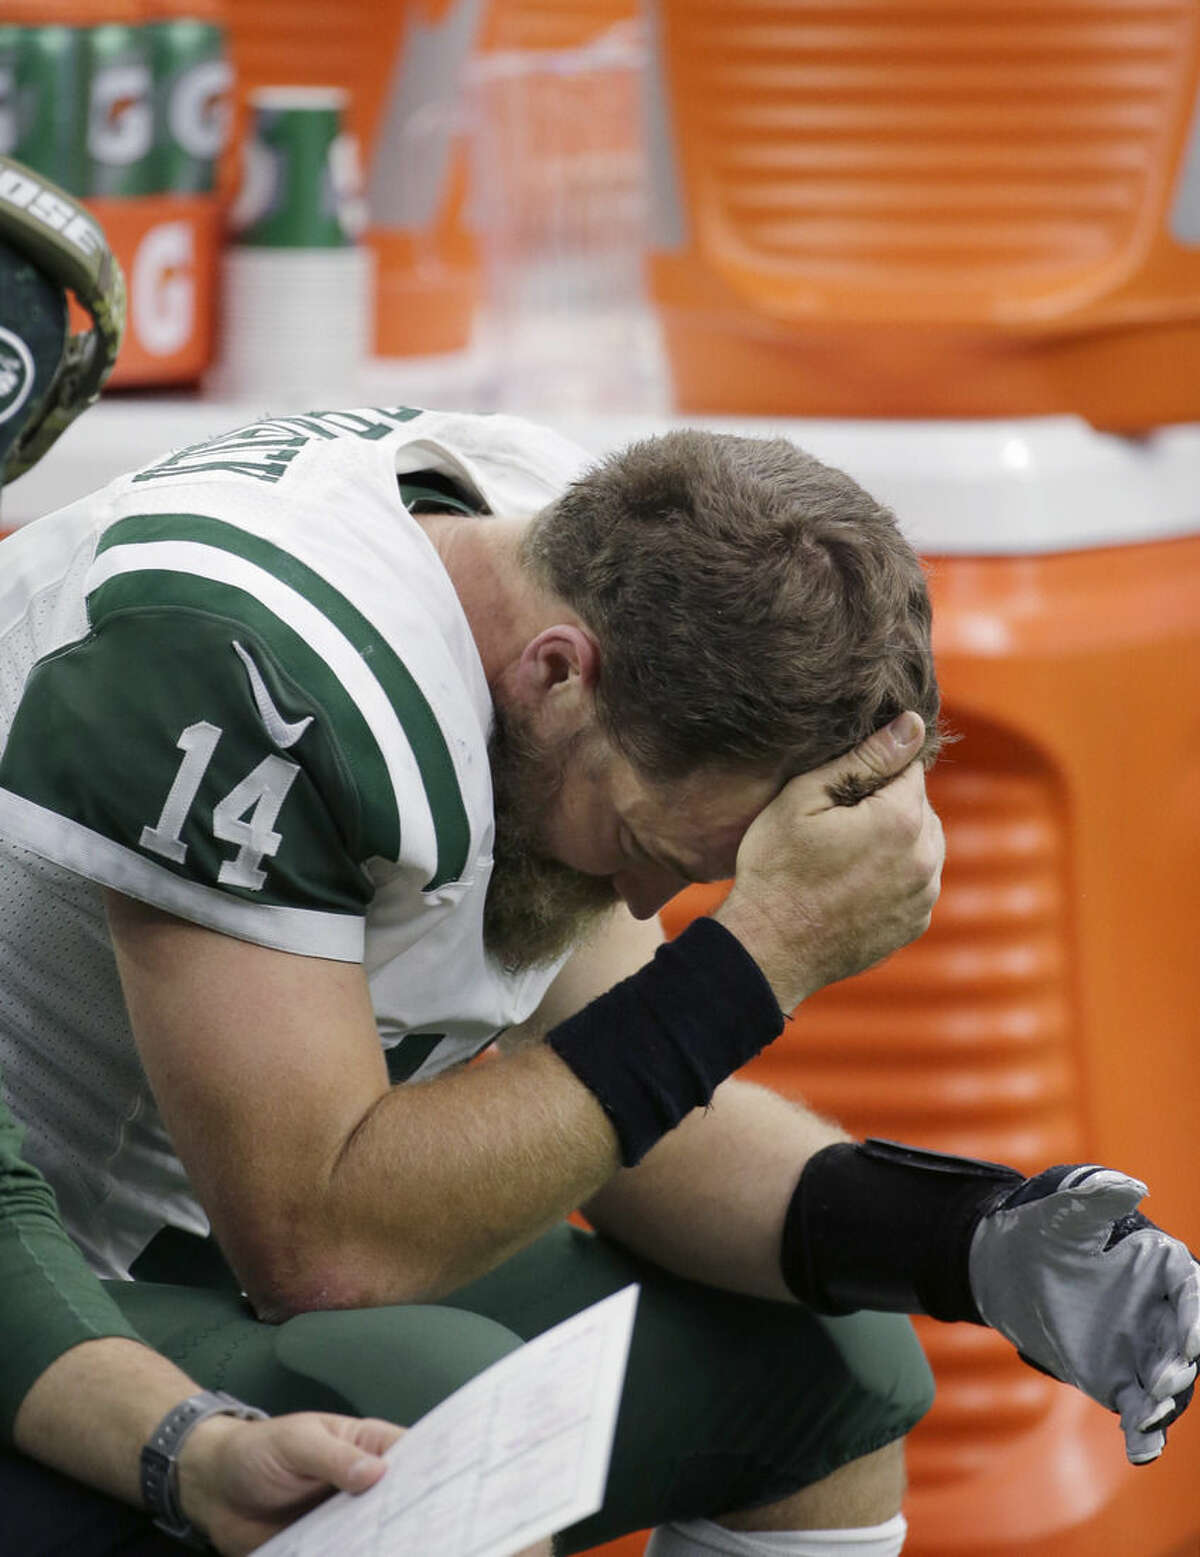 New York Jets quarterback Ryan Fitzpatrick sits on the bench during the second half of an NFL football game against the Houston Texans, Sunday, Nov. 22, 2015, in Houston. (AP Photo/David J. Phillip)